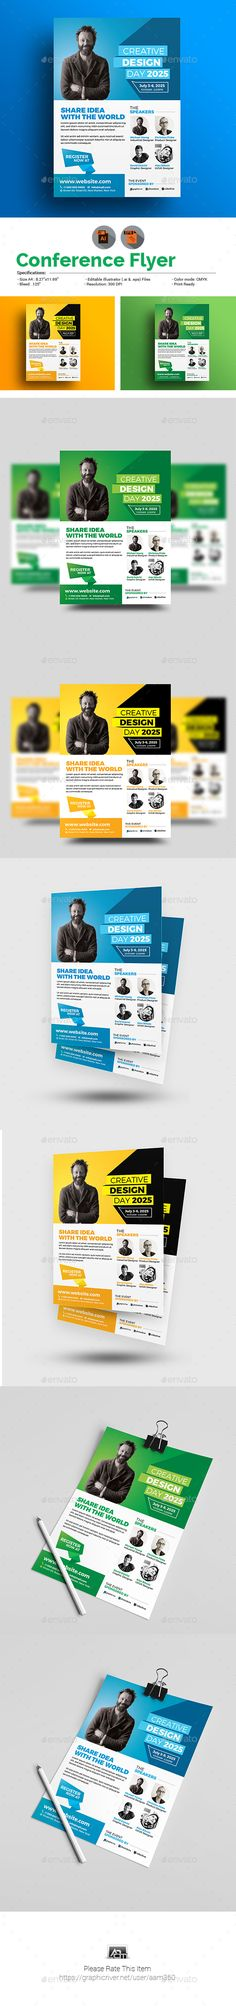 Conference Flyer Template - Corporate Flyers